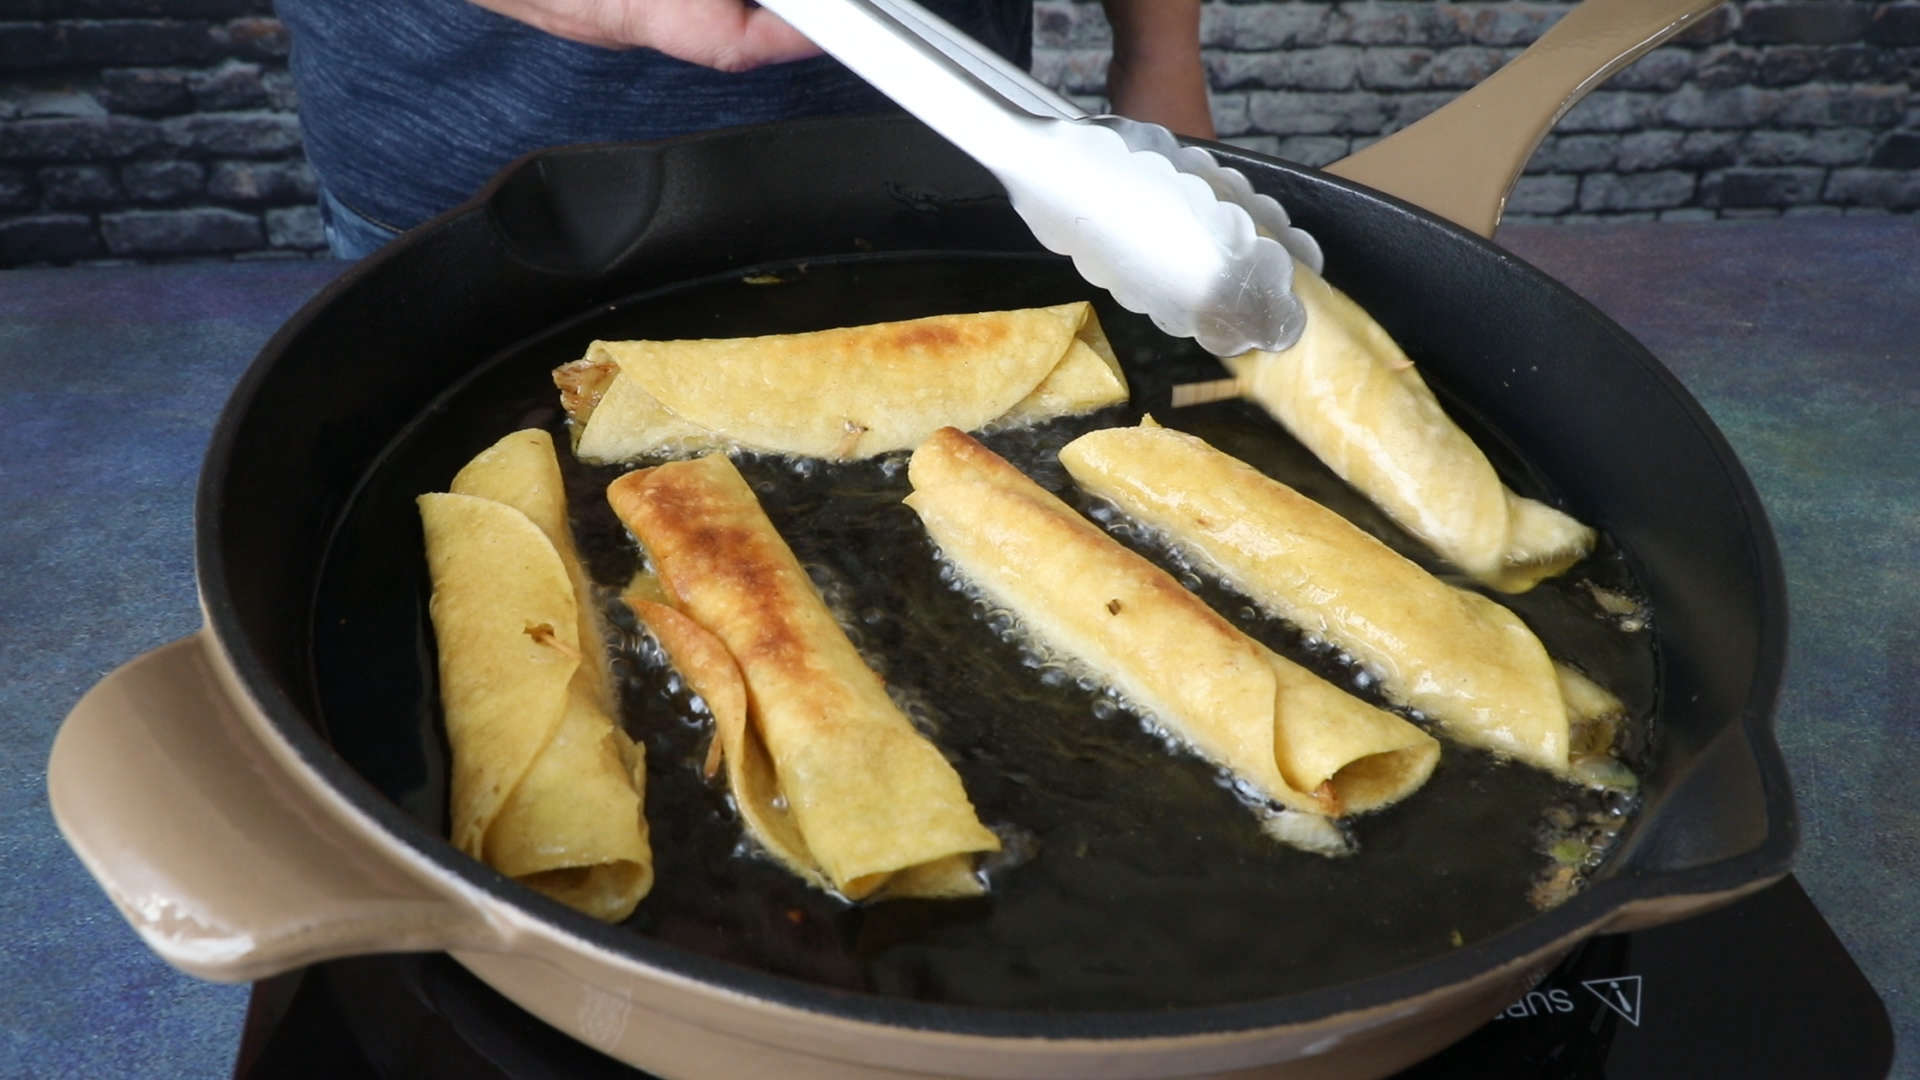 Frying the Chicken Taquitos in oil in a pan